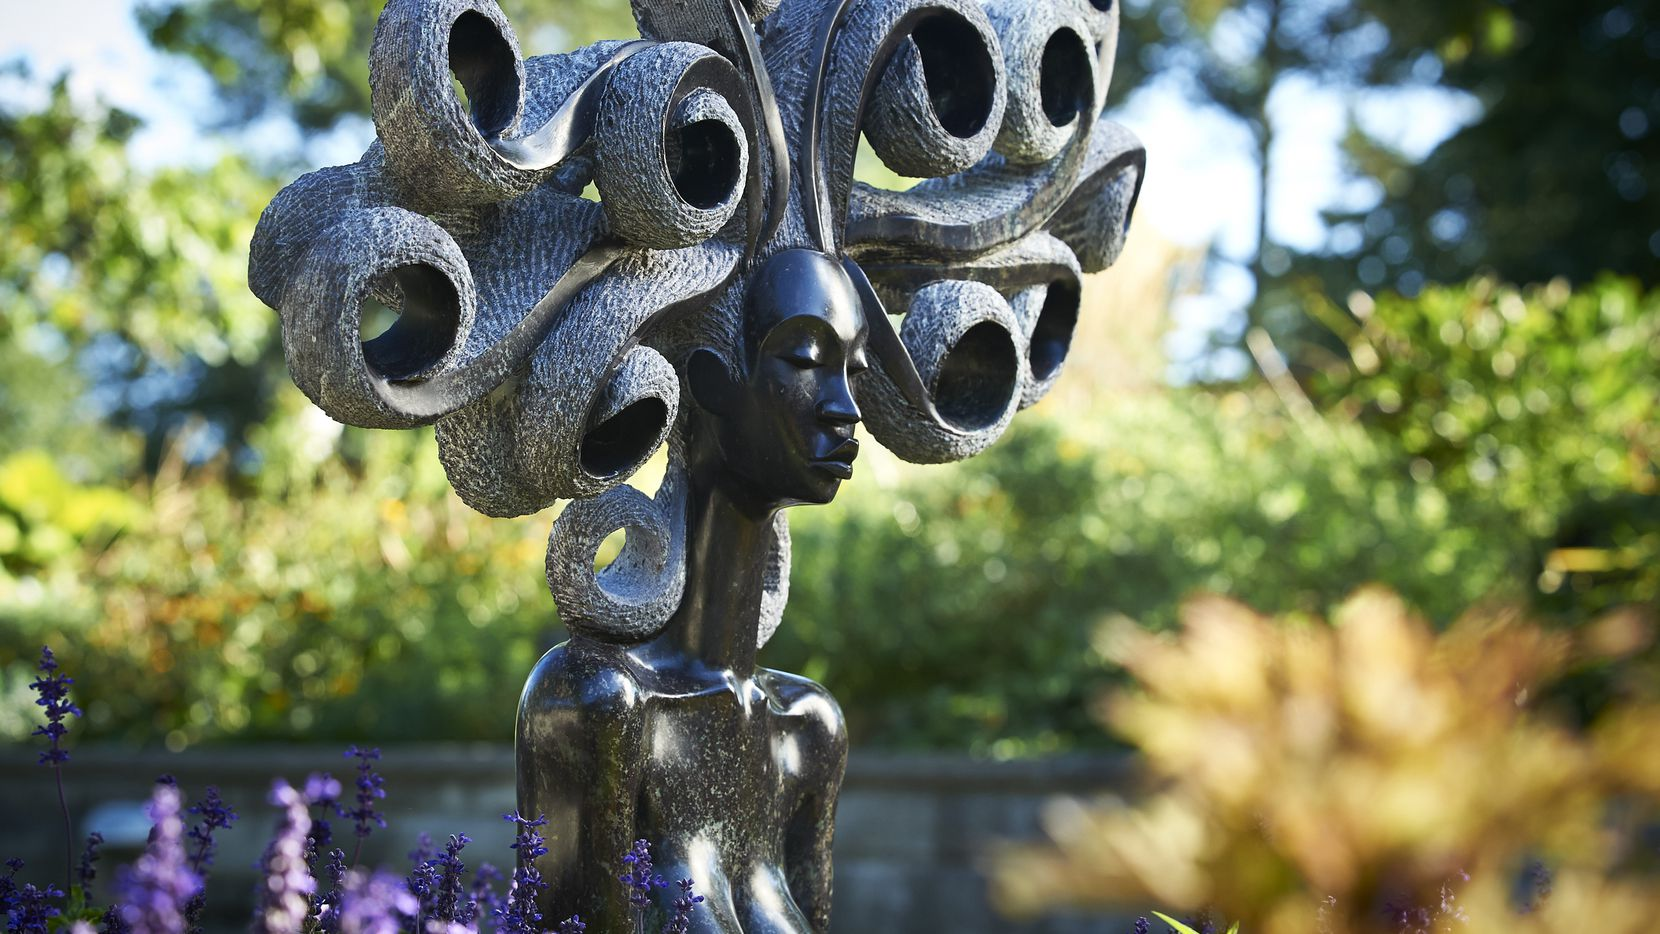 ZimSculpt at the Dallas Arboretum features the talent of several contemporary Zimbabwean artists with more than 100 hand-selected sculptures displayed throughout the garden.